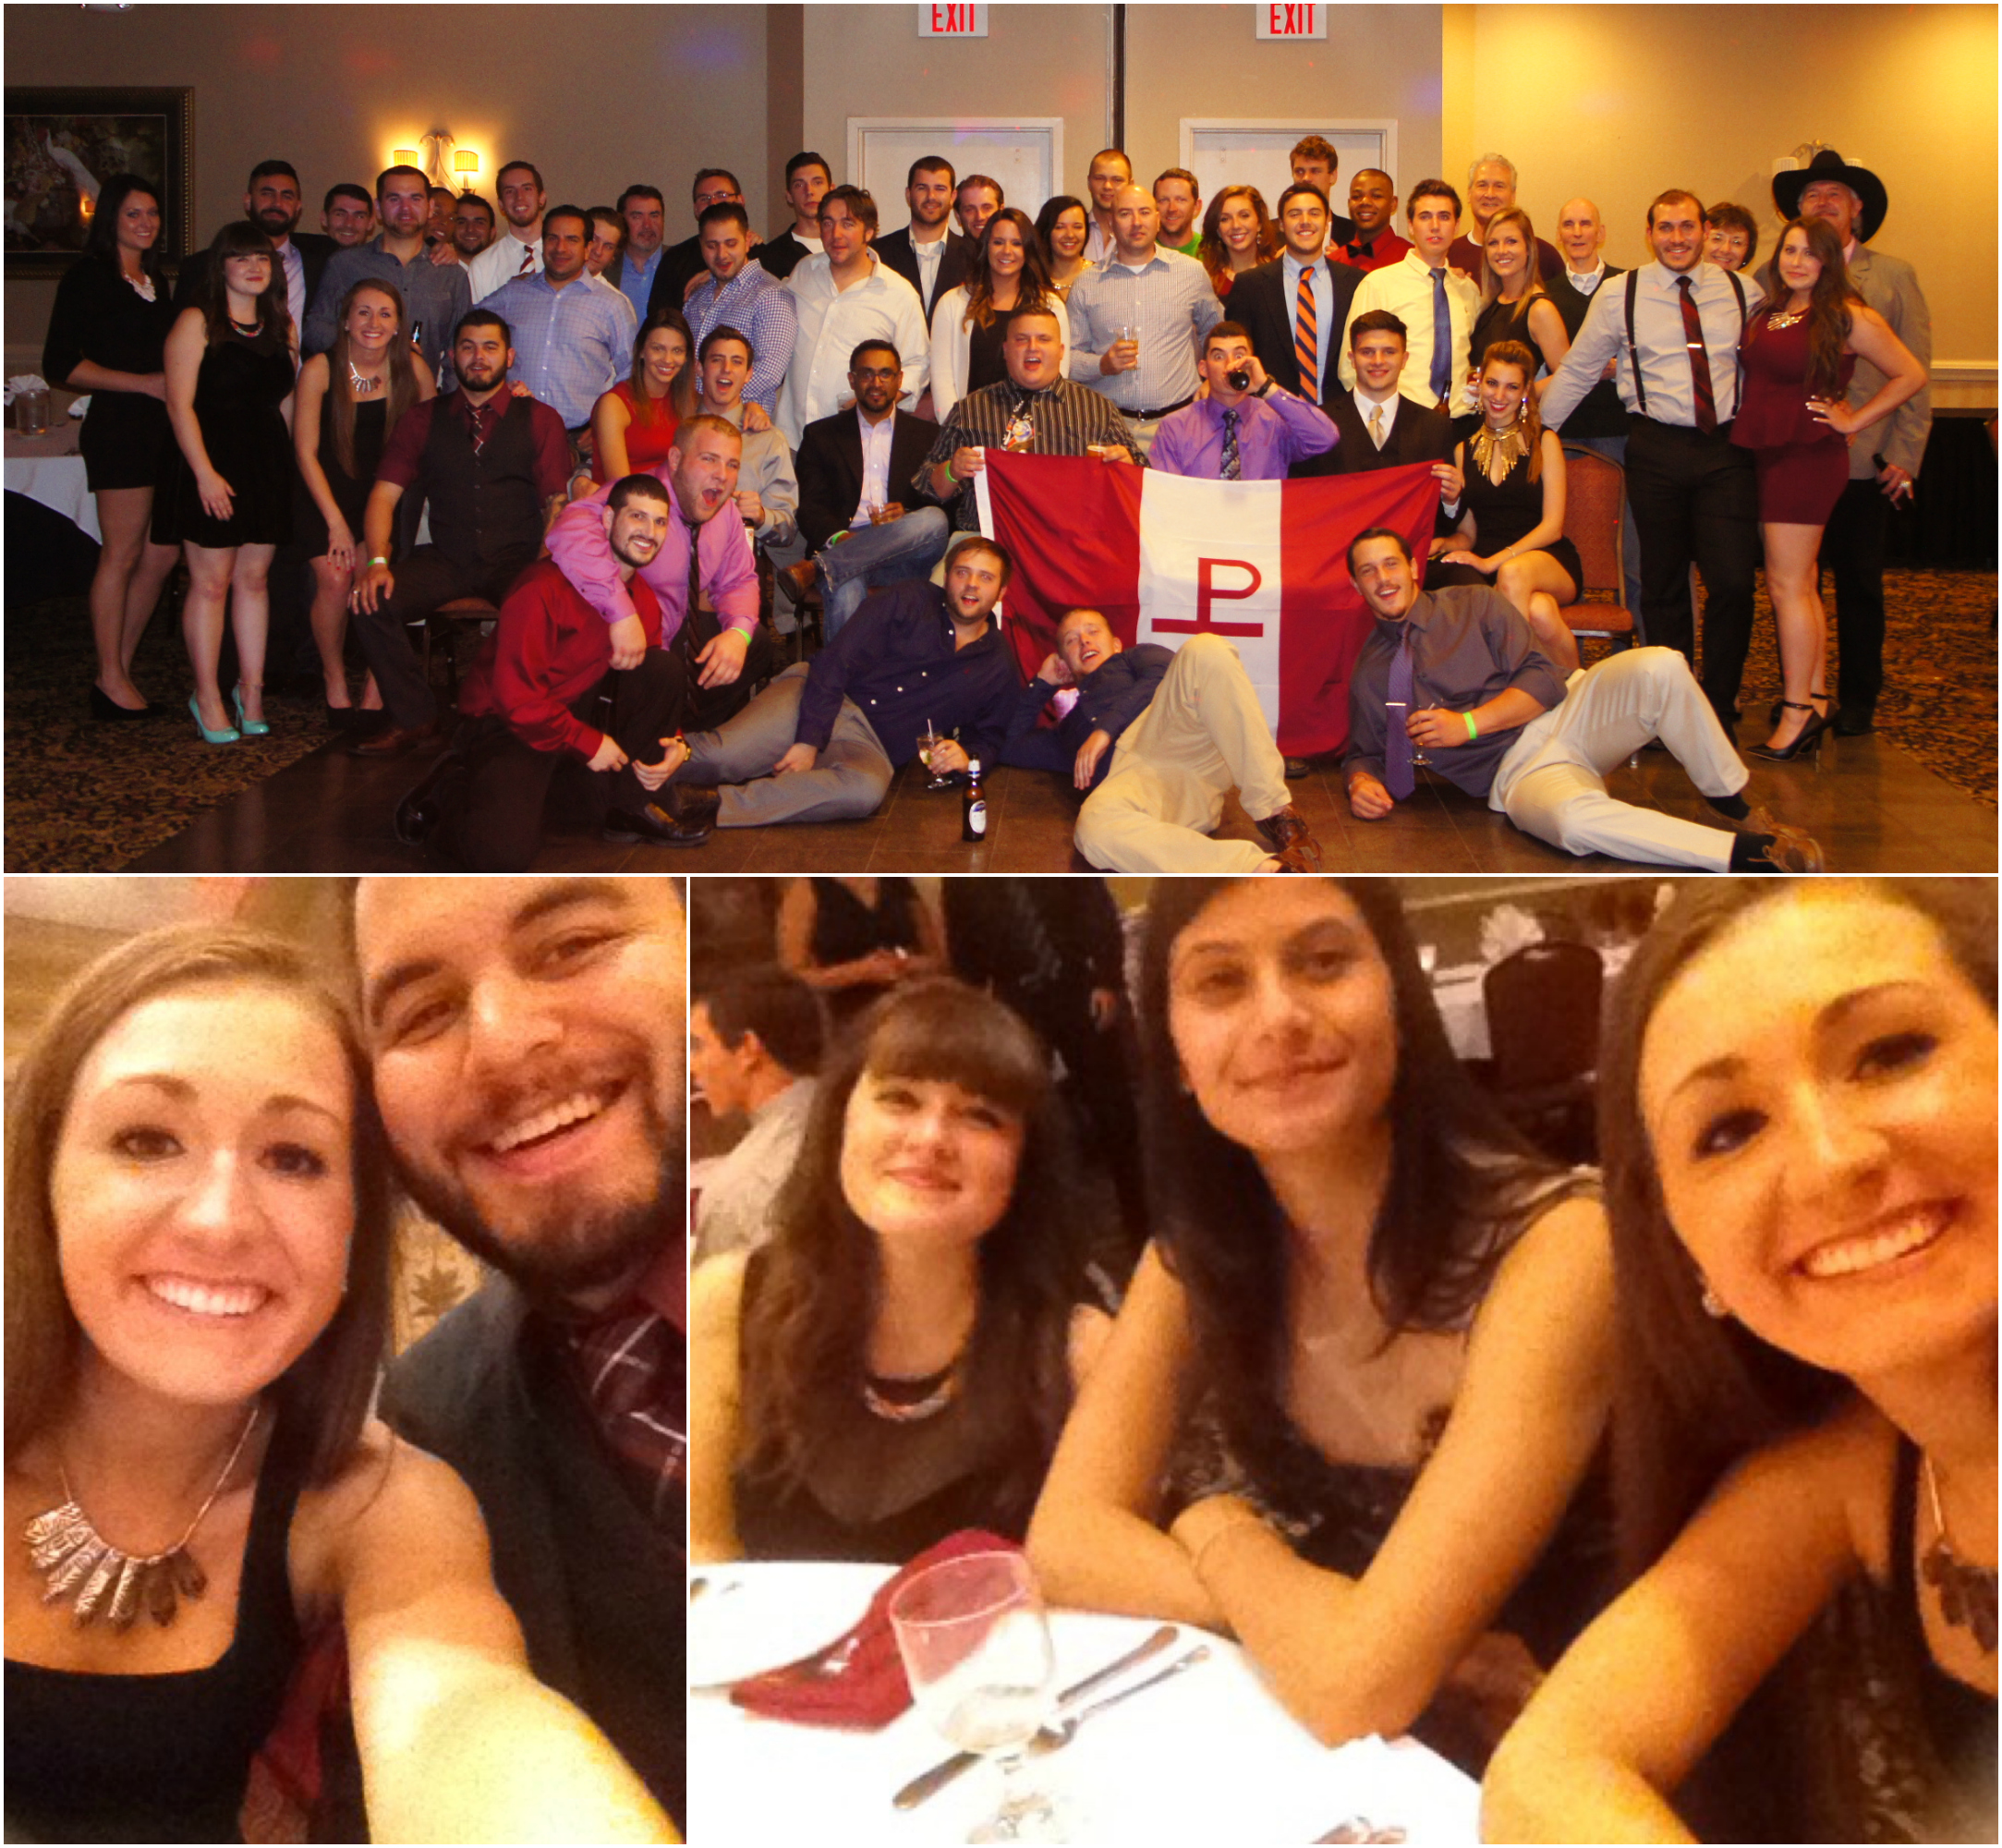 Some of the pictures from the Alpha Chi Rho formal!